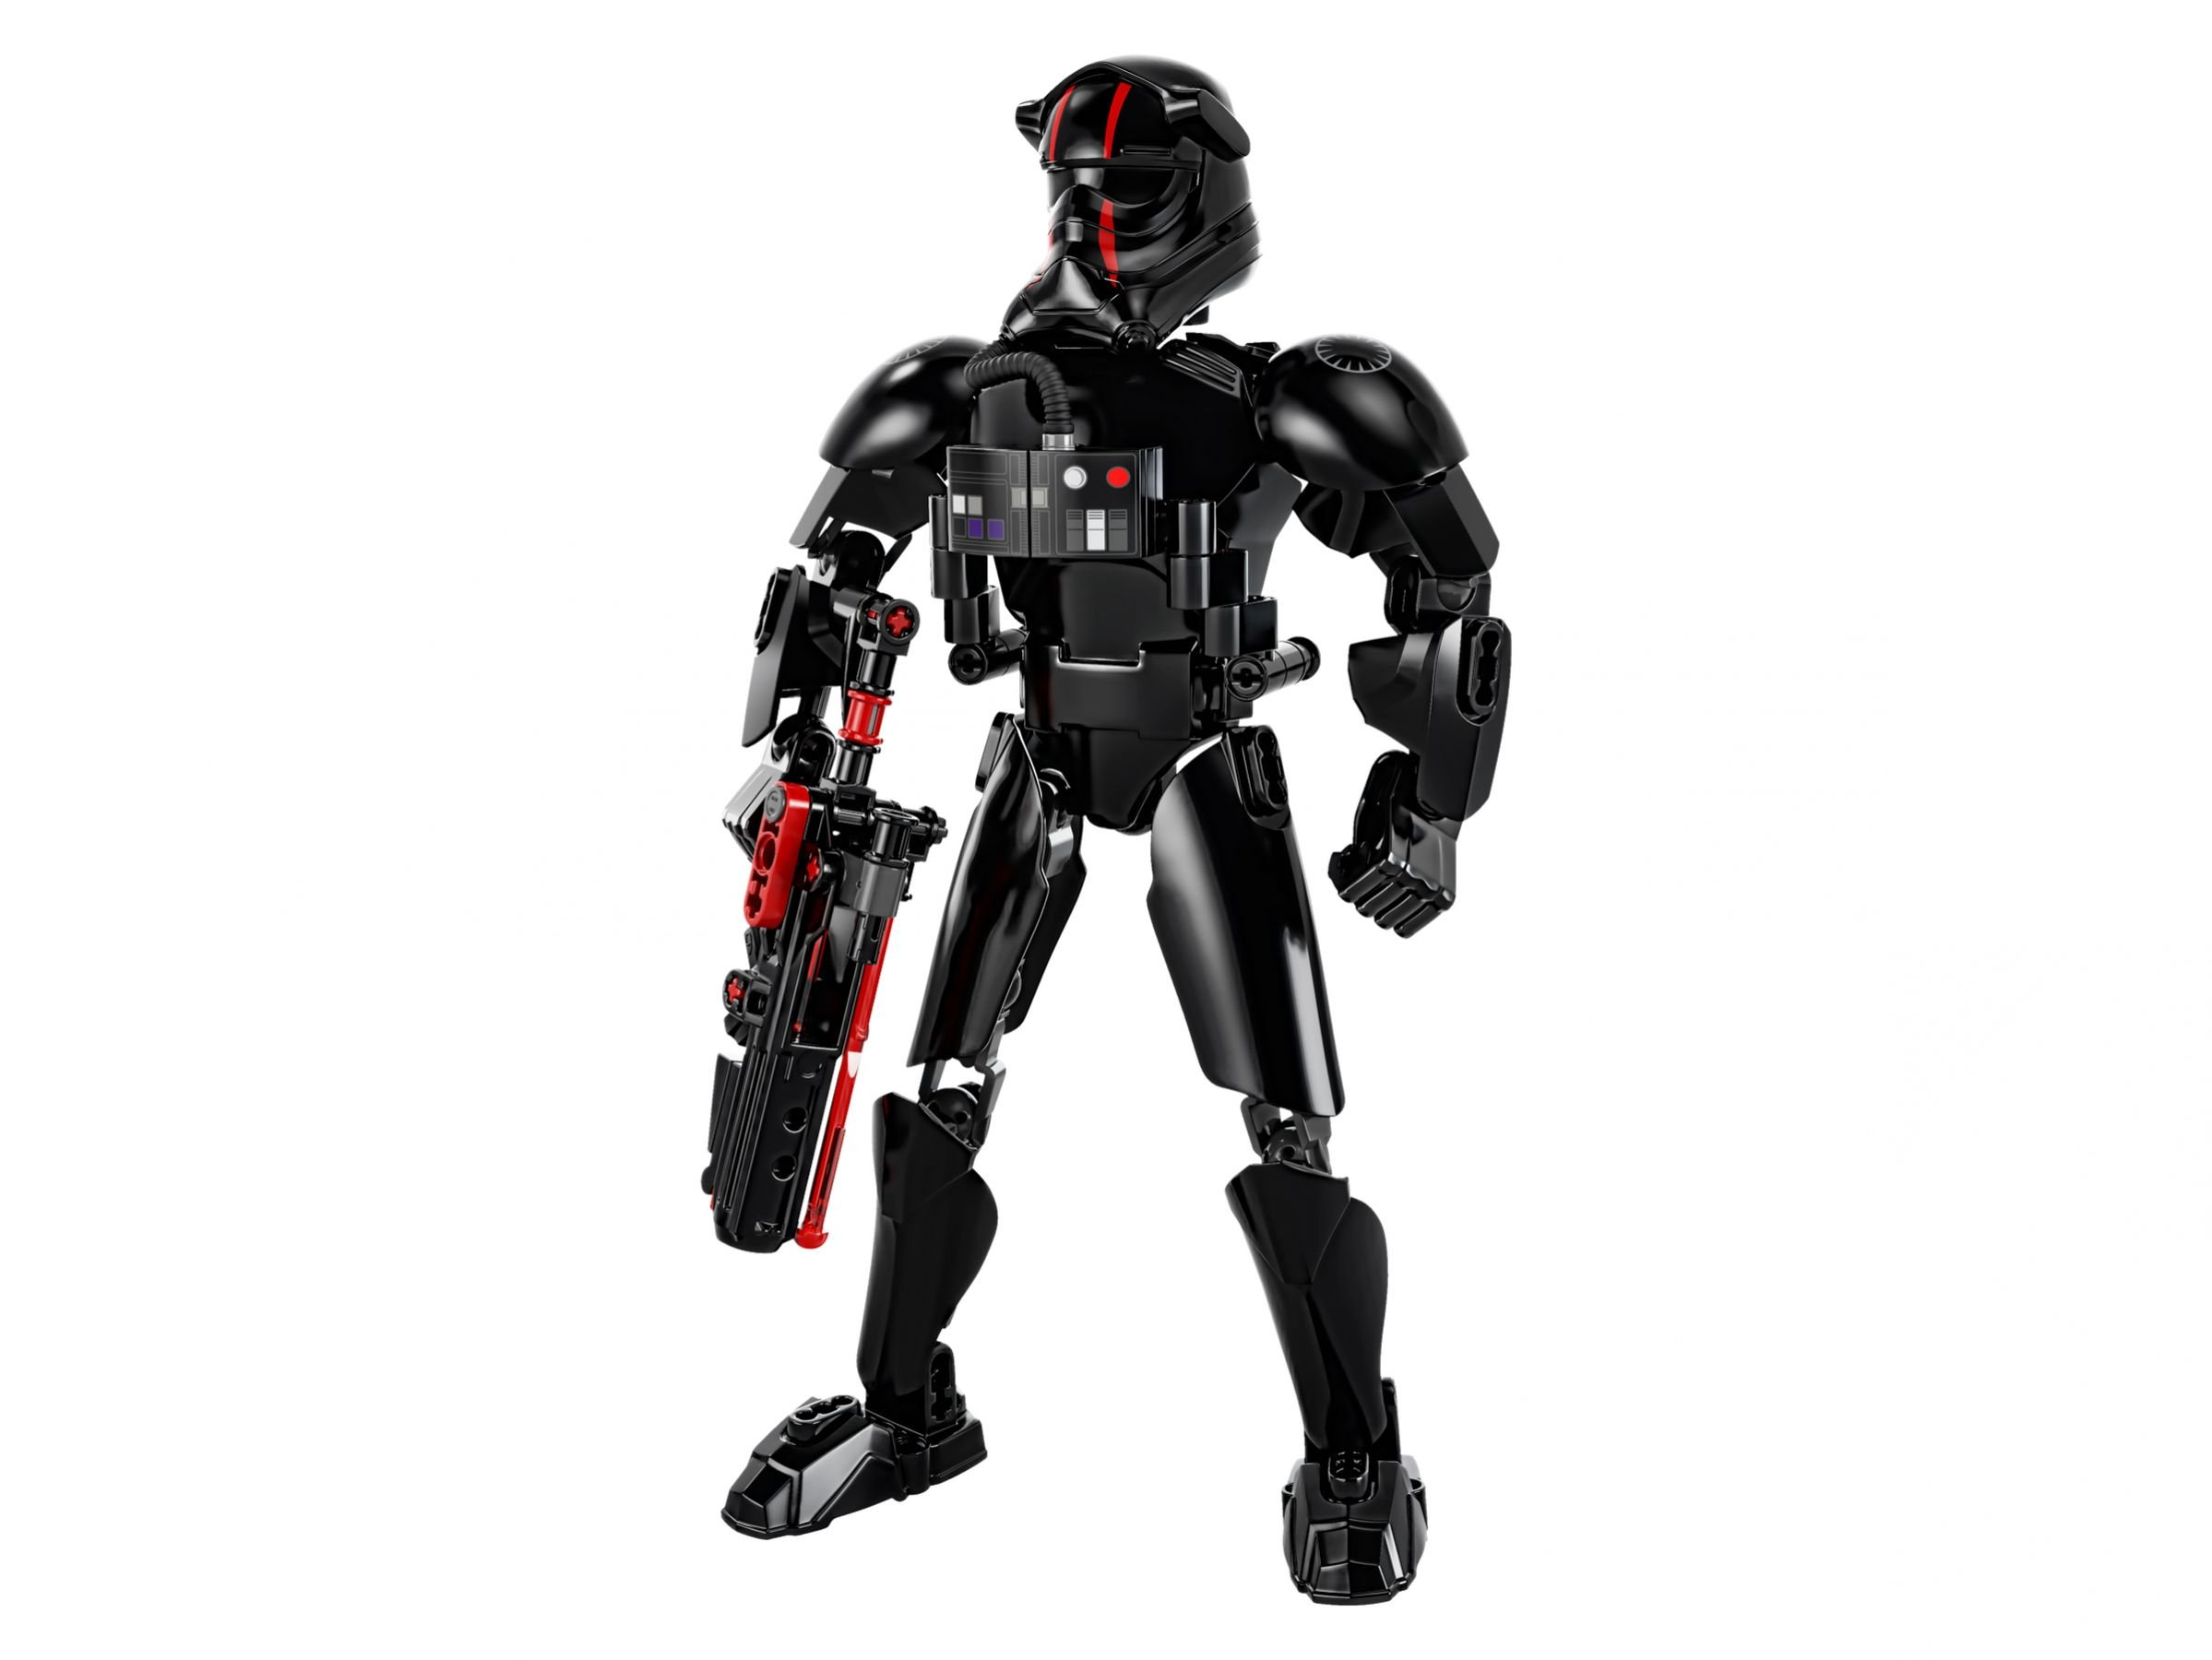 LEGO Star Wars Buildable Figures 75526 Elite TIE Fighter Pilot™ LEGO_75526_alt2.jpg